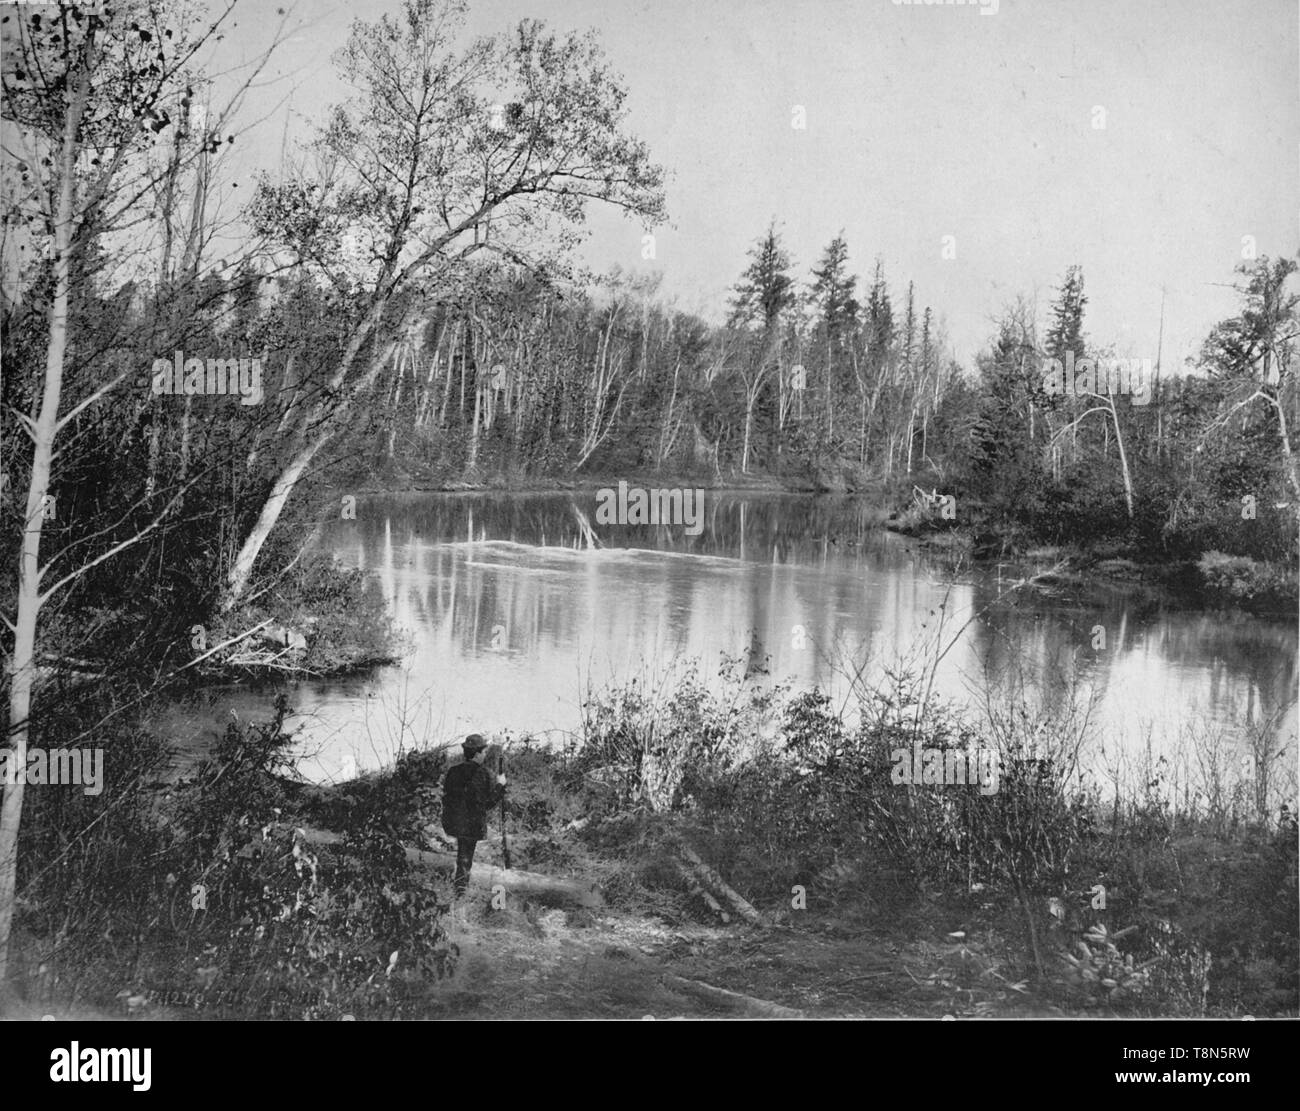 """'Scene on Peshtigo River, Wisconsin', c1897. The river shares its name with the city of Peshtigo, destroyed by the Peshtigo Fire on October 8, 1871. Many people fled for the river to escape the inferno. From """"A Tour Through the New World America"""", by Prof. Geo. R. Cromwell. [C. N. Greig & Co., London, c1897] - Stock Image"""